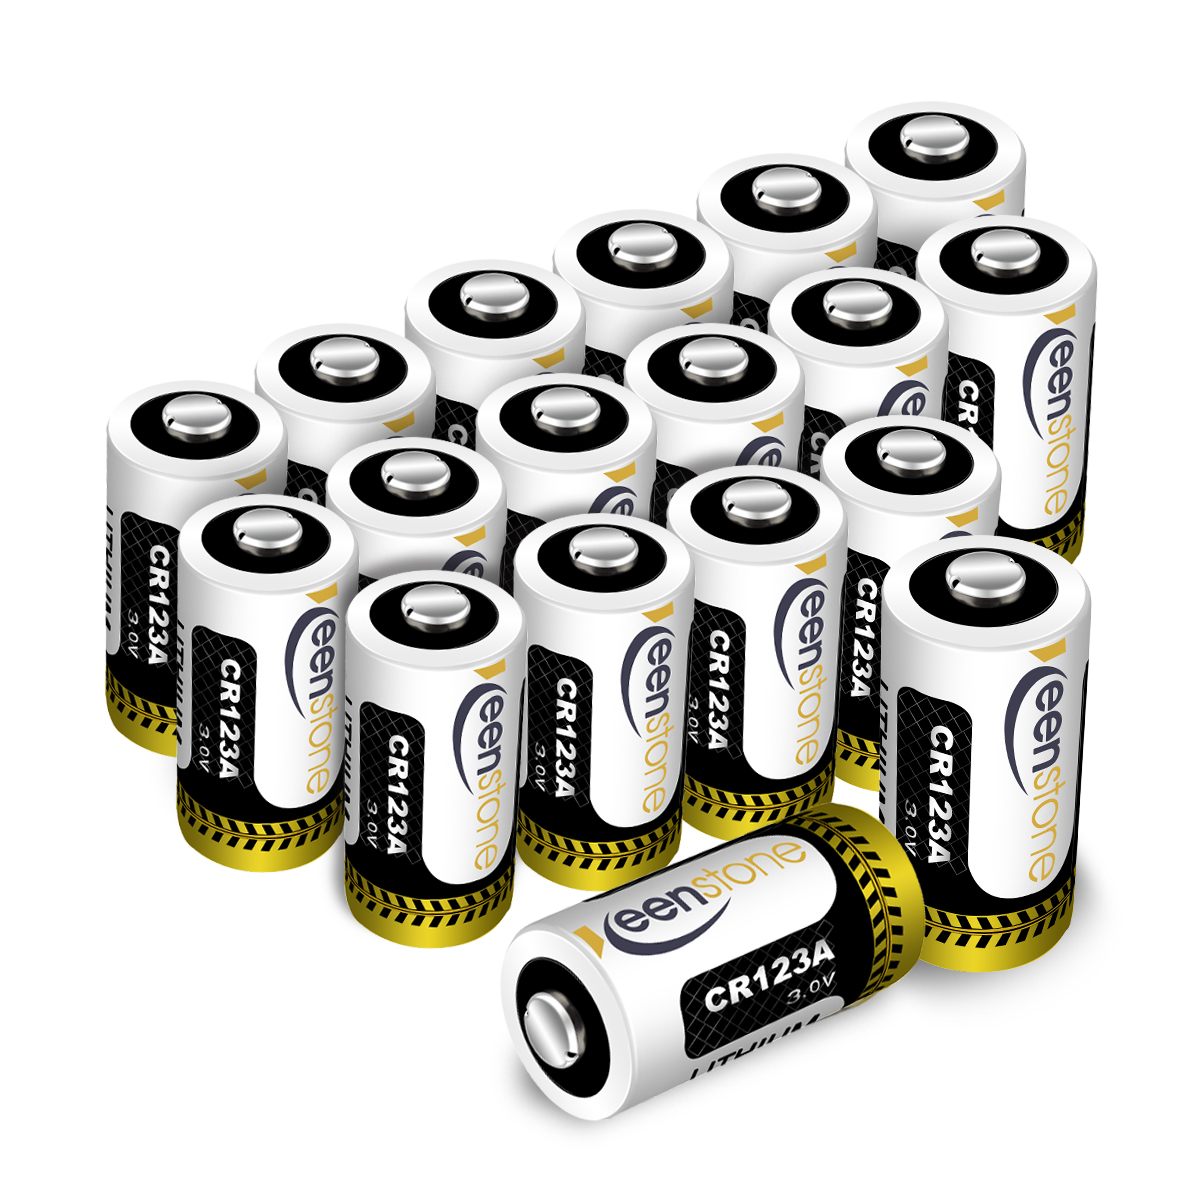 18 Pcs CR123 CR123A Lithium Battery, High Performance  Primary Batteries for Flashlight Photo Digital CameraToys Torch(Not Compatible with Arlo Cameras)